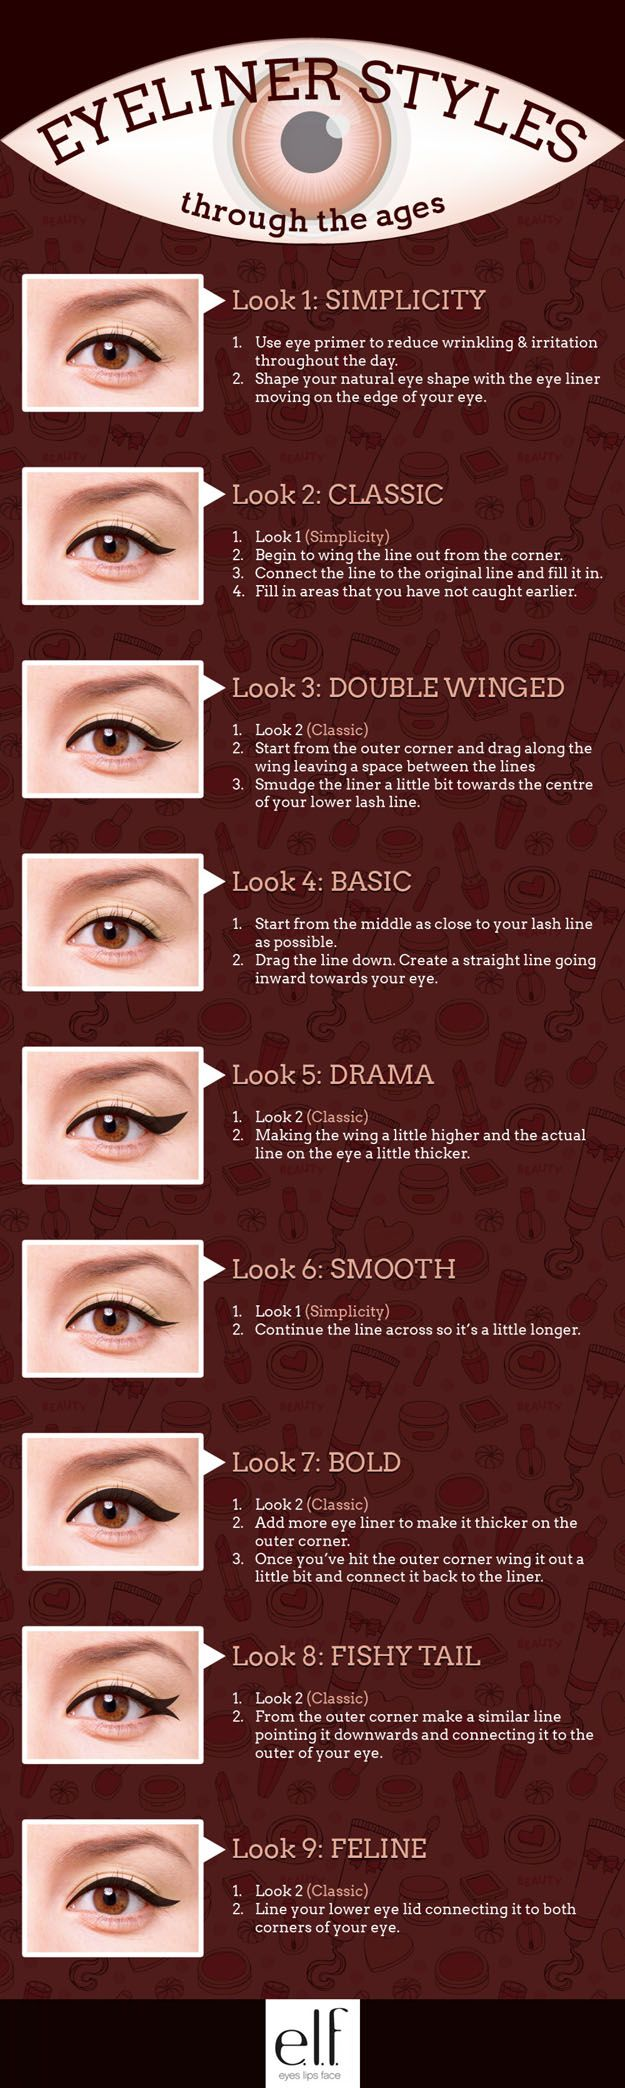 Simple Eyeliner Tutorials for Perfect Eyeliner different looks!